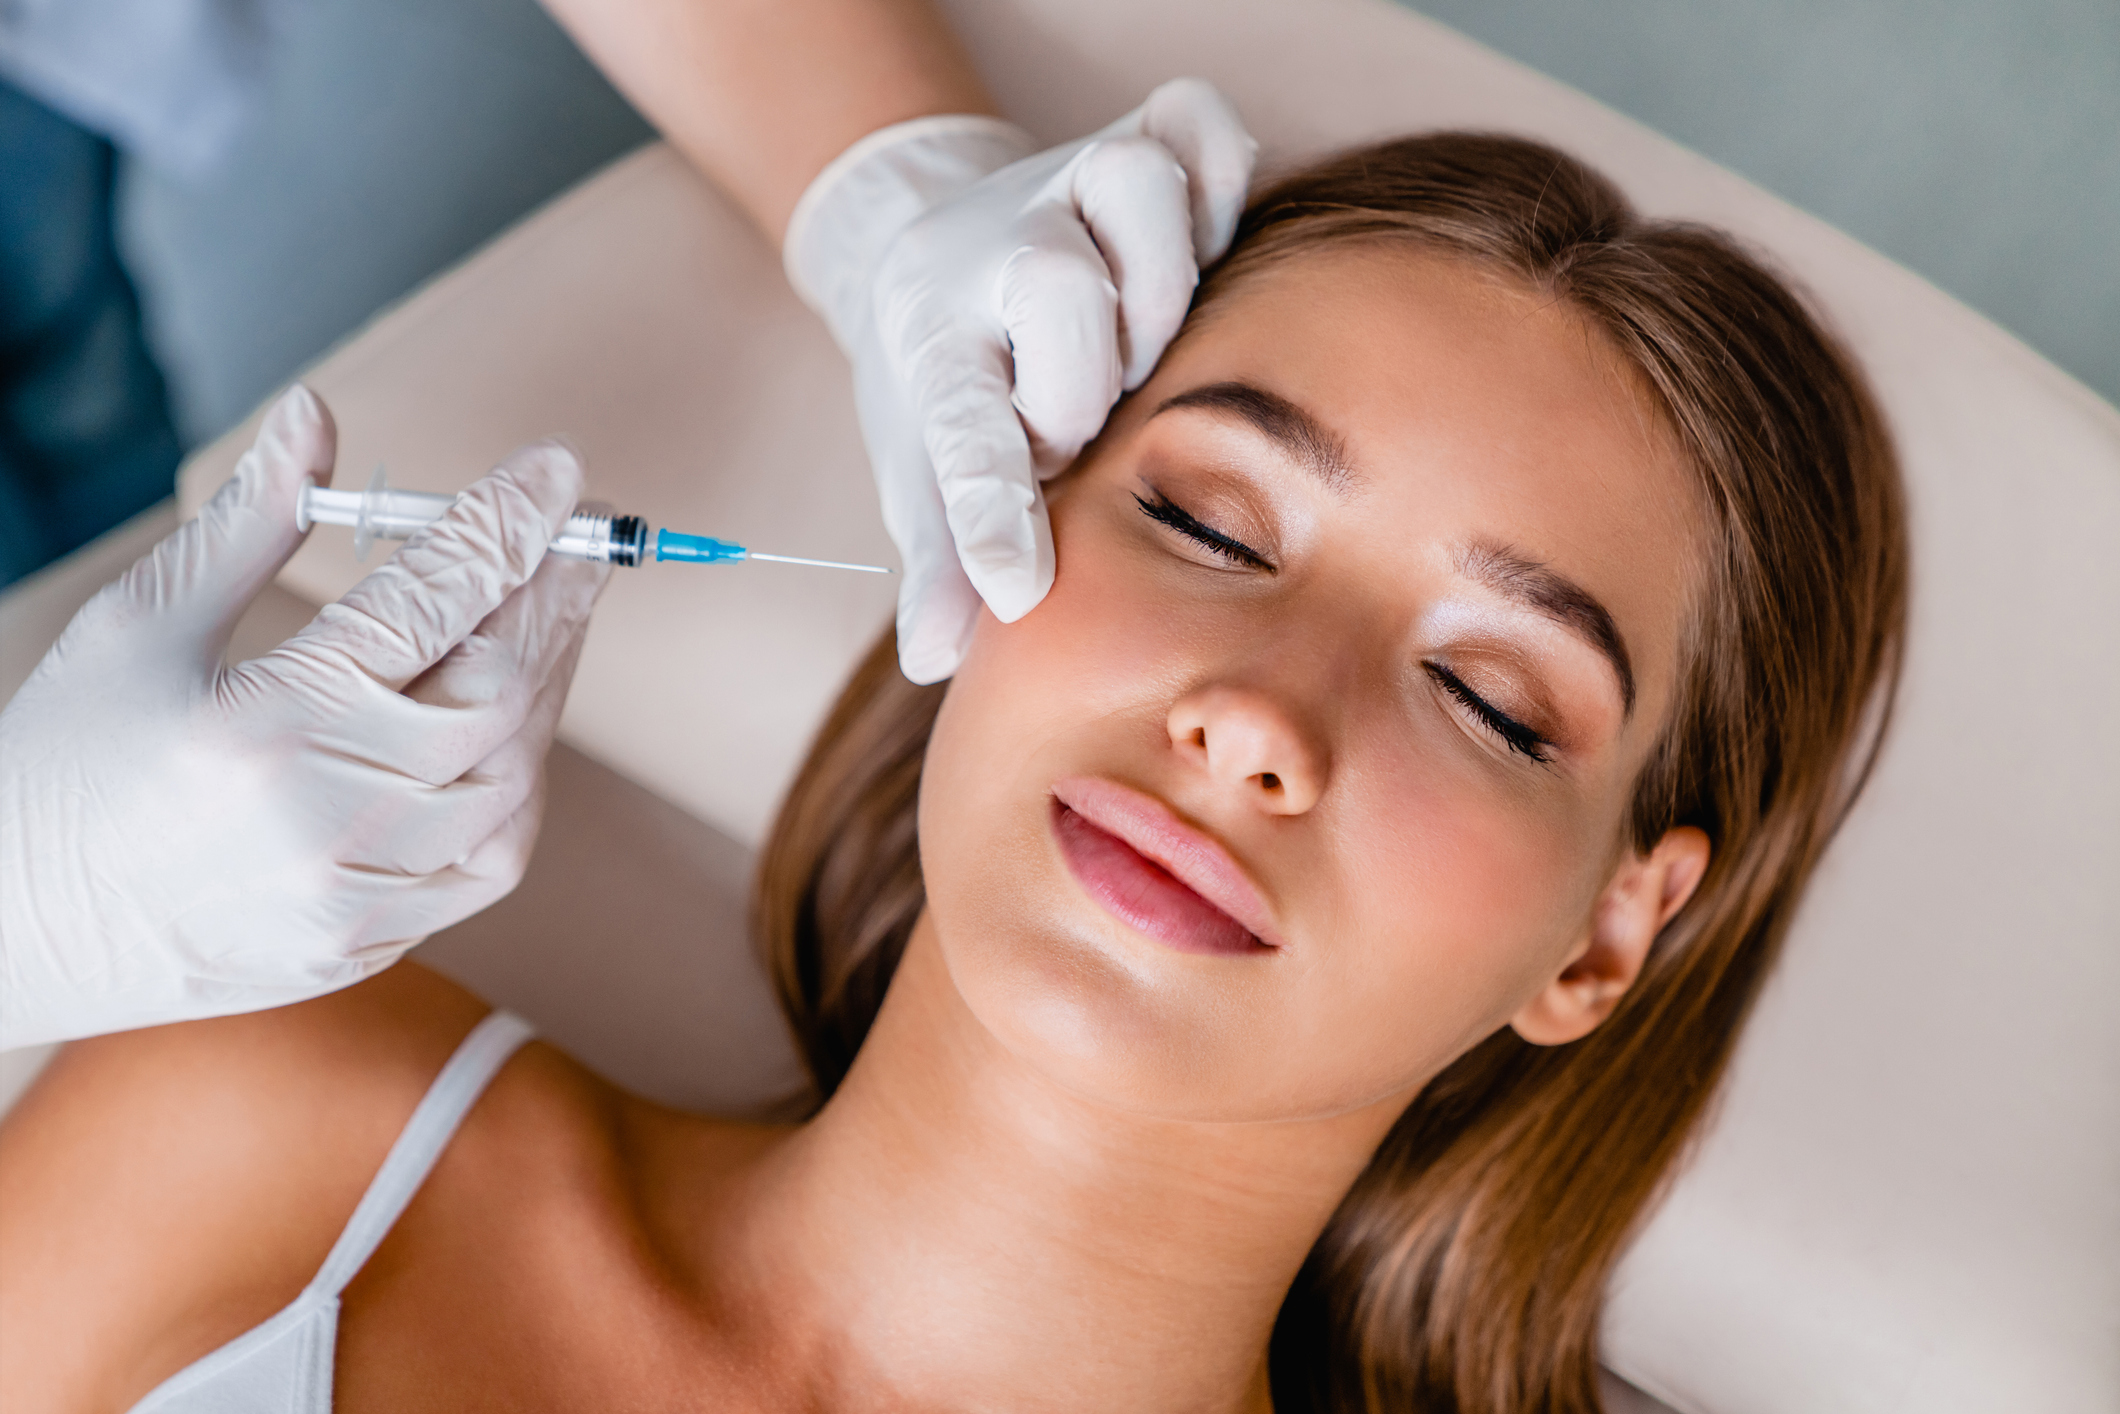 Mangat Plastic Surgery Institute and Skin Care Blog | Vail Plastic Surgeons and Skin Care Pros Break Down Common Botox Myths